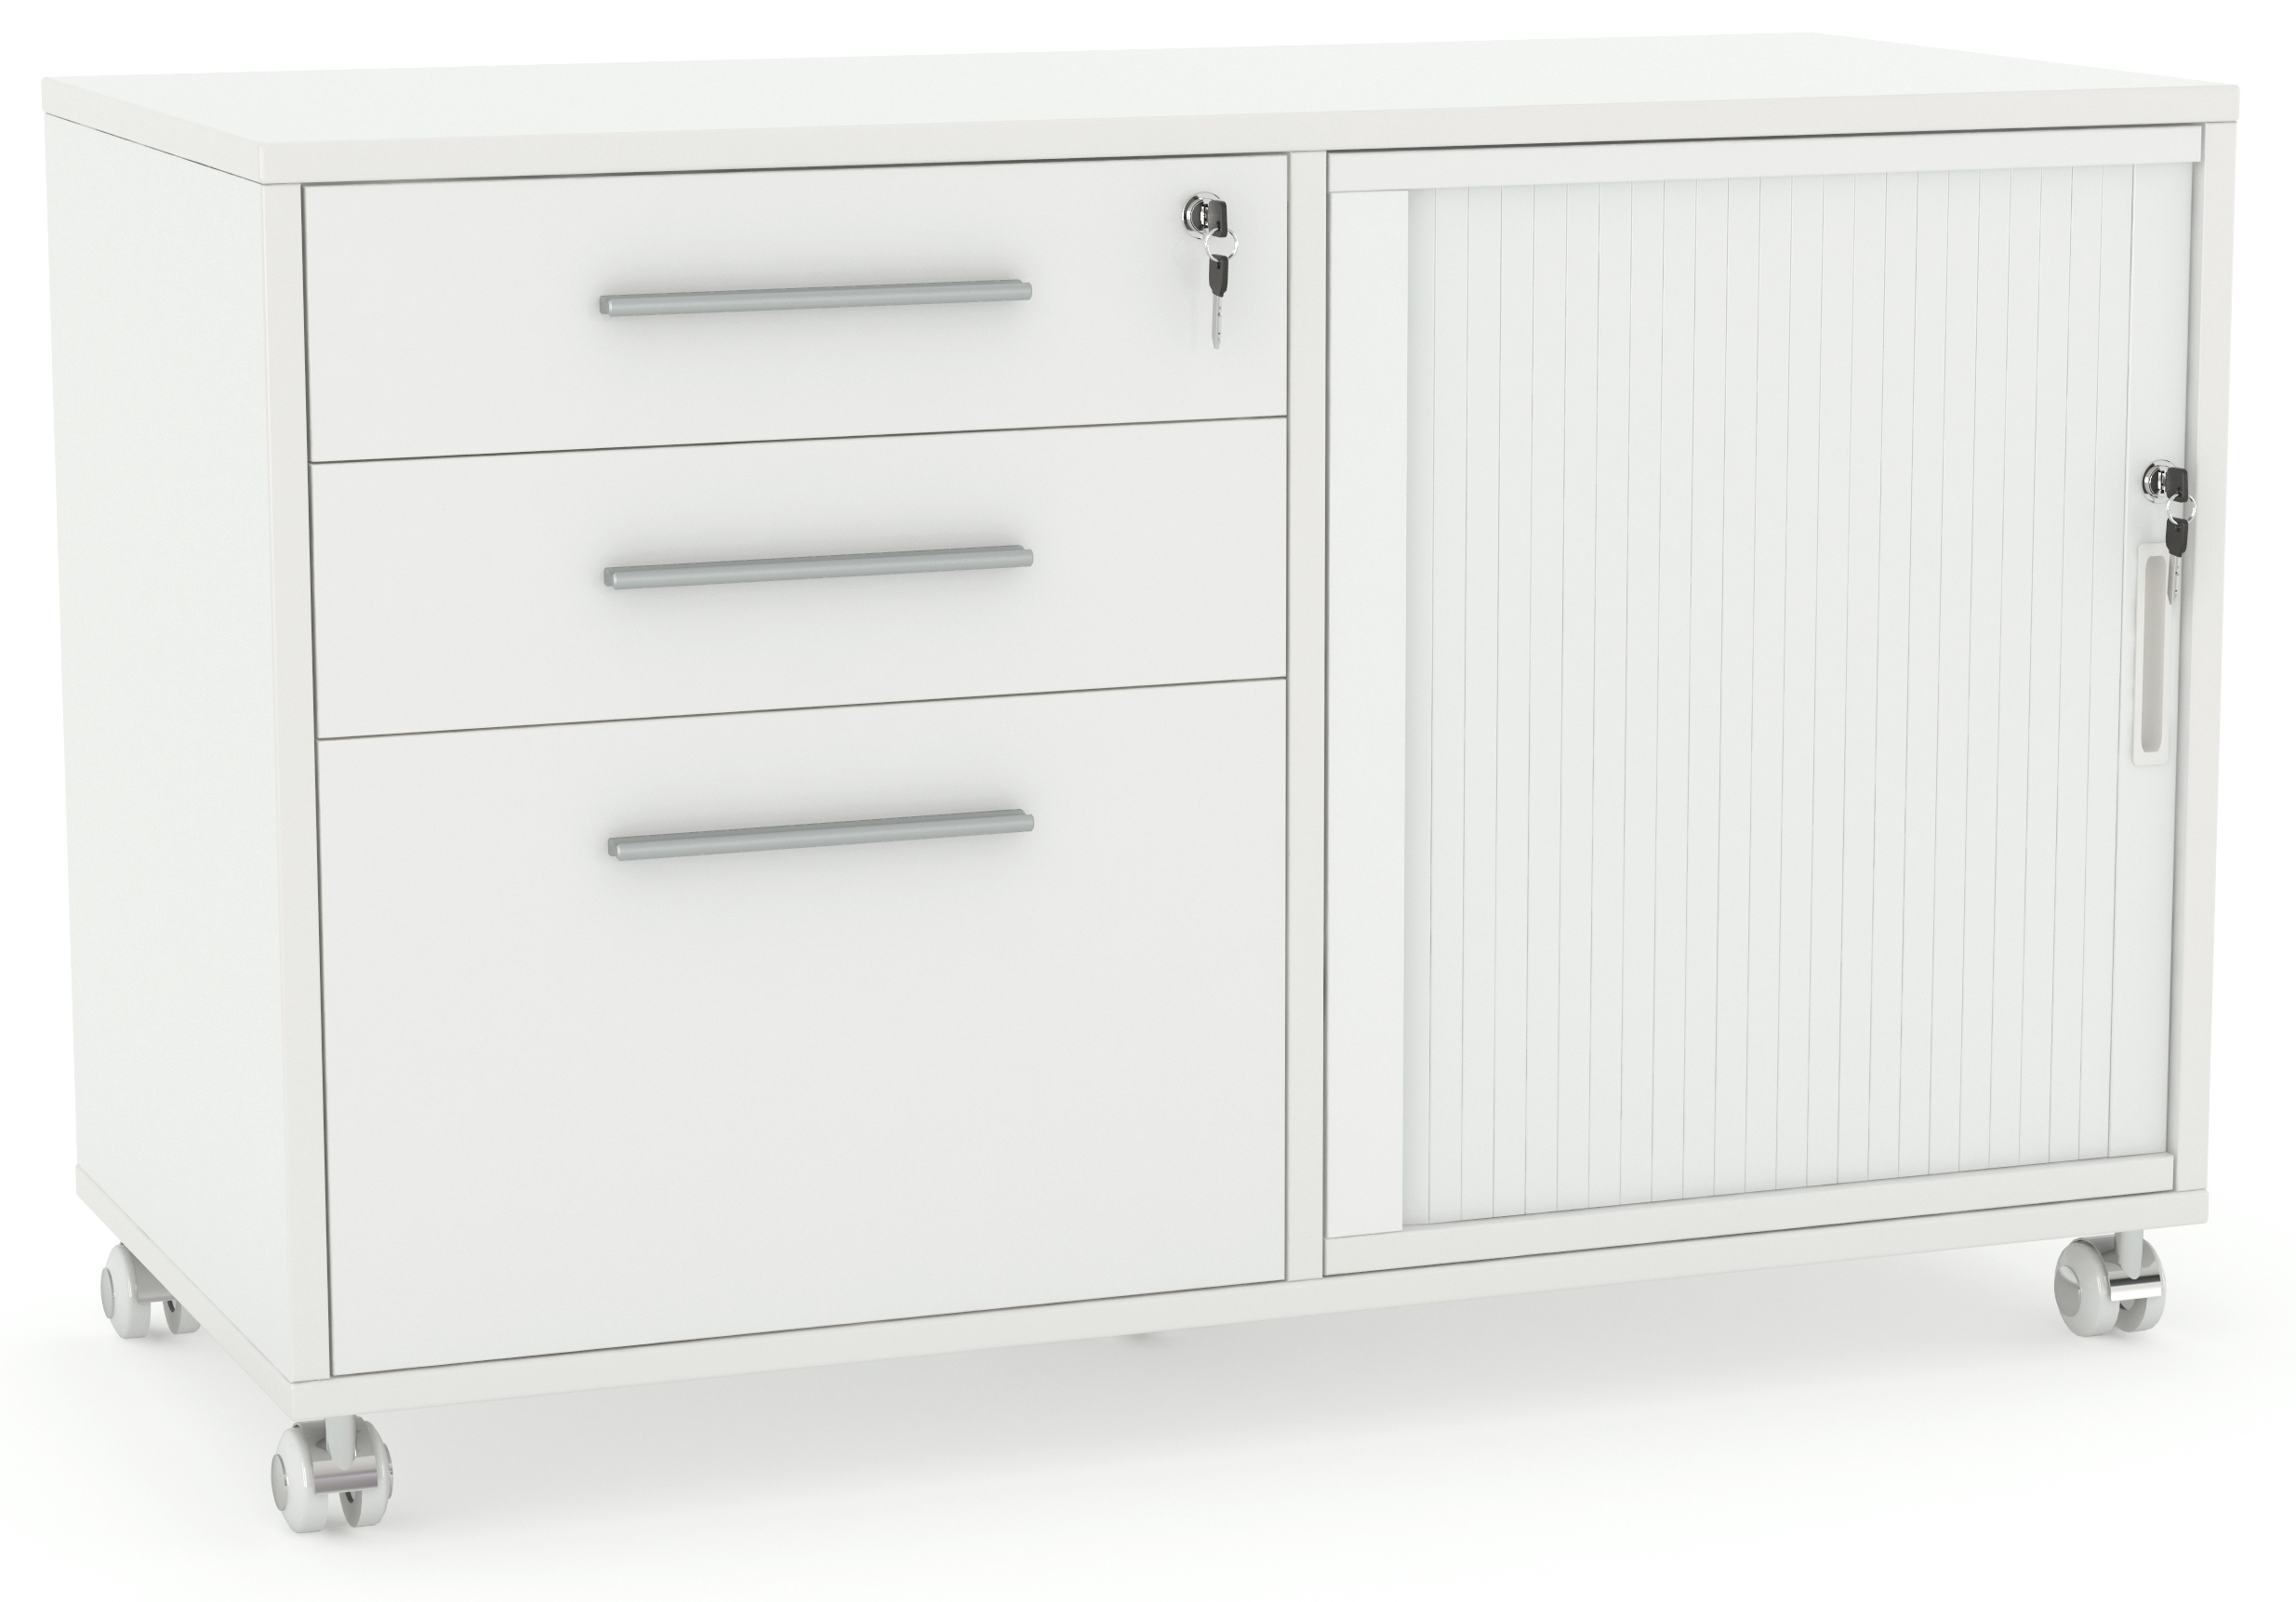 Axis Caddy Draw Tambour